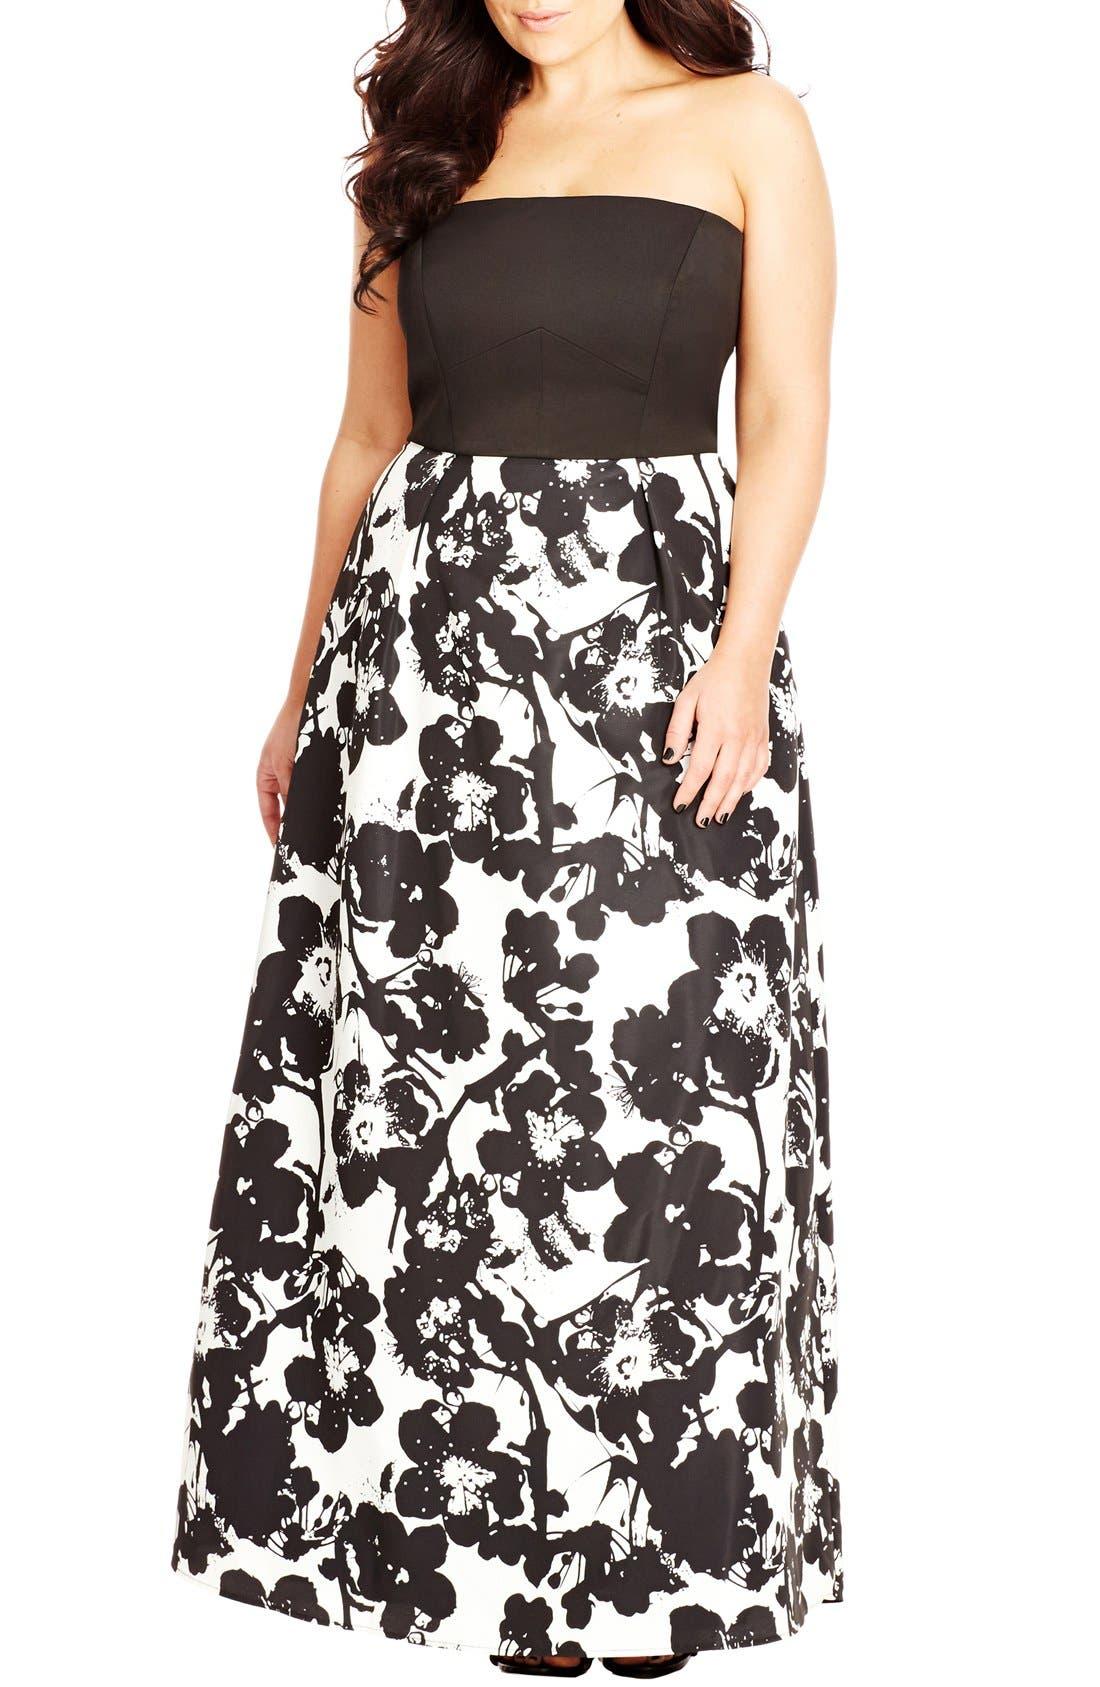 Main Image - City Chic 'Painted Poppy' Strapless Maxi Dress (Plus Size)